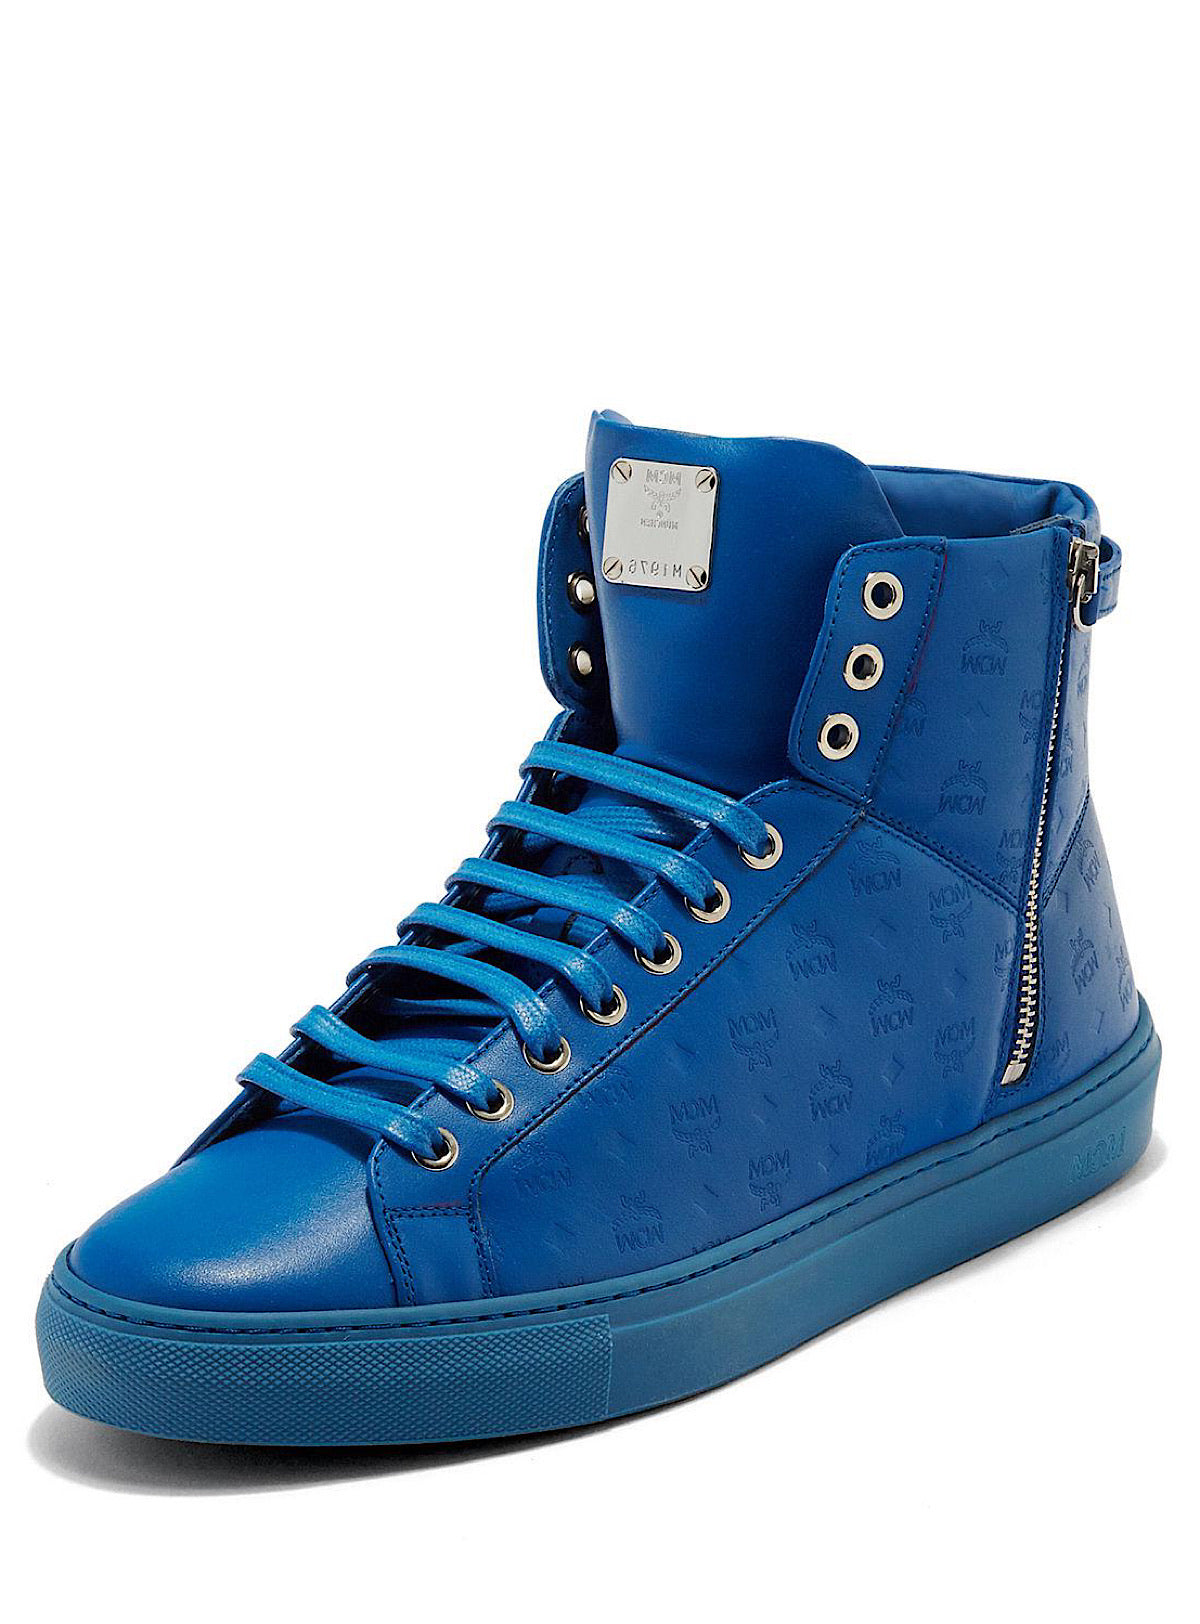 MCM Shoes - Visetos High Top - Royal Blue